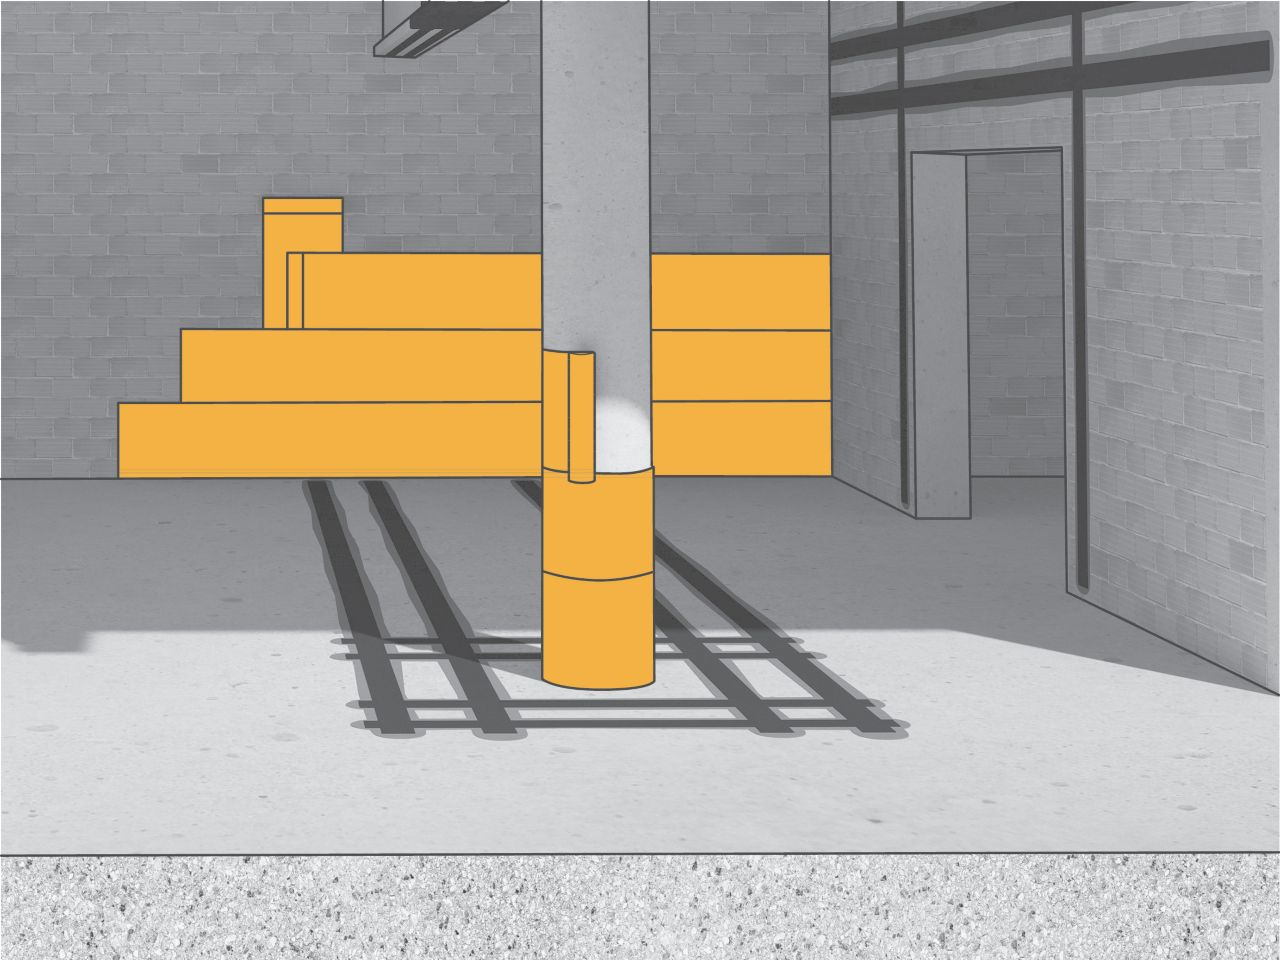 Illustration of concrete and brick building interior and column reinforced with structural strengthening fiber FRP fabric